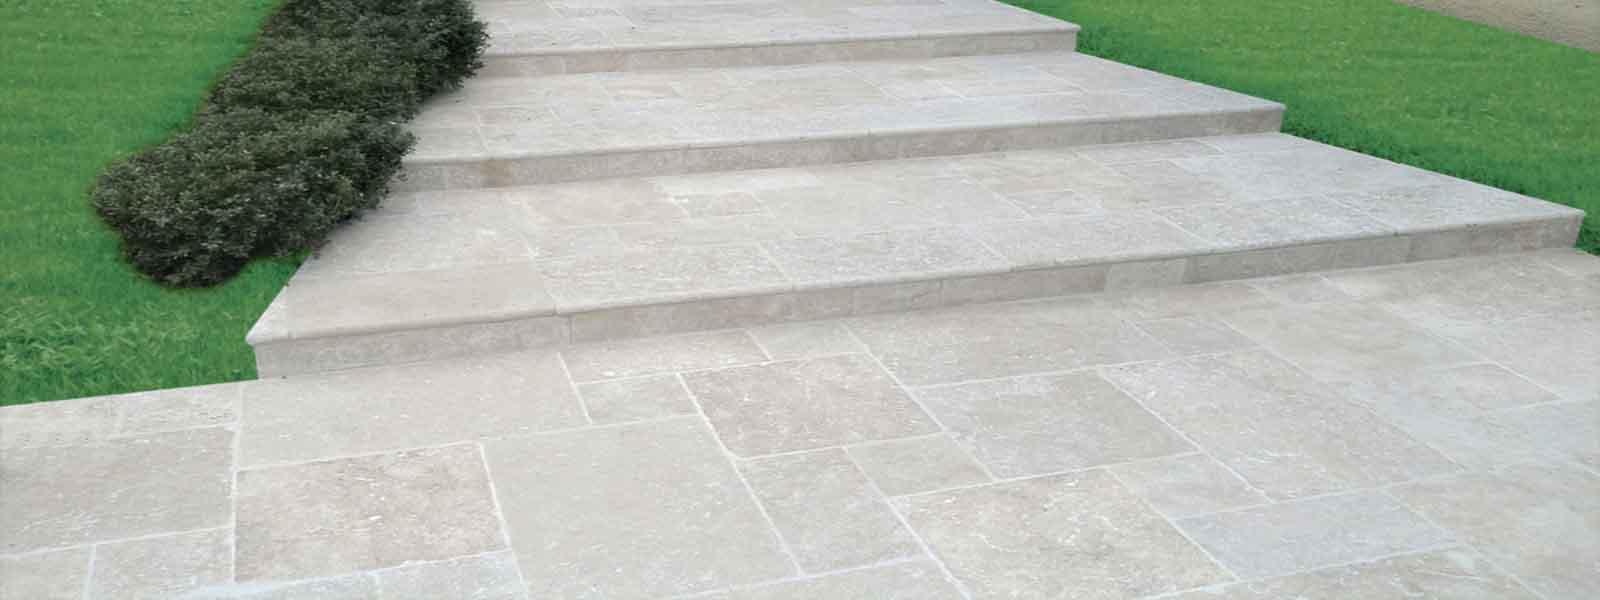 carrelage ext rieur travertin en pierre naturelle pour ForCarrelage Exterieur Travertin